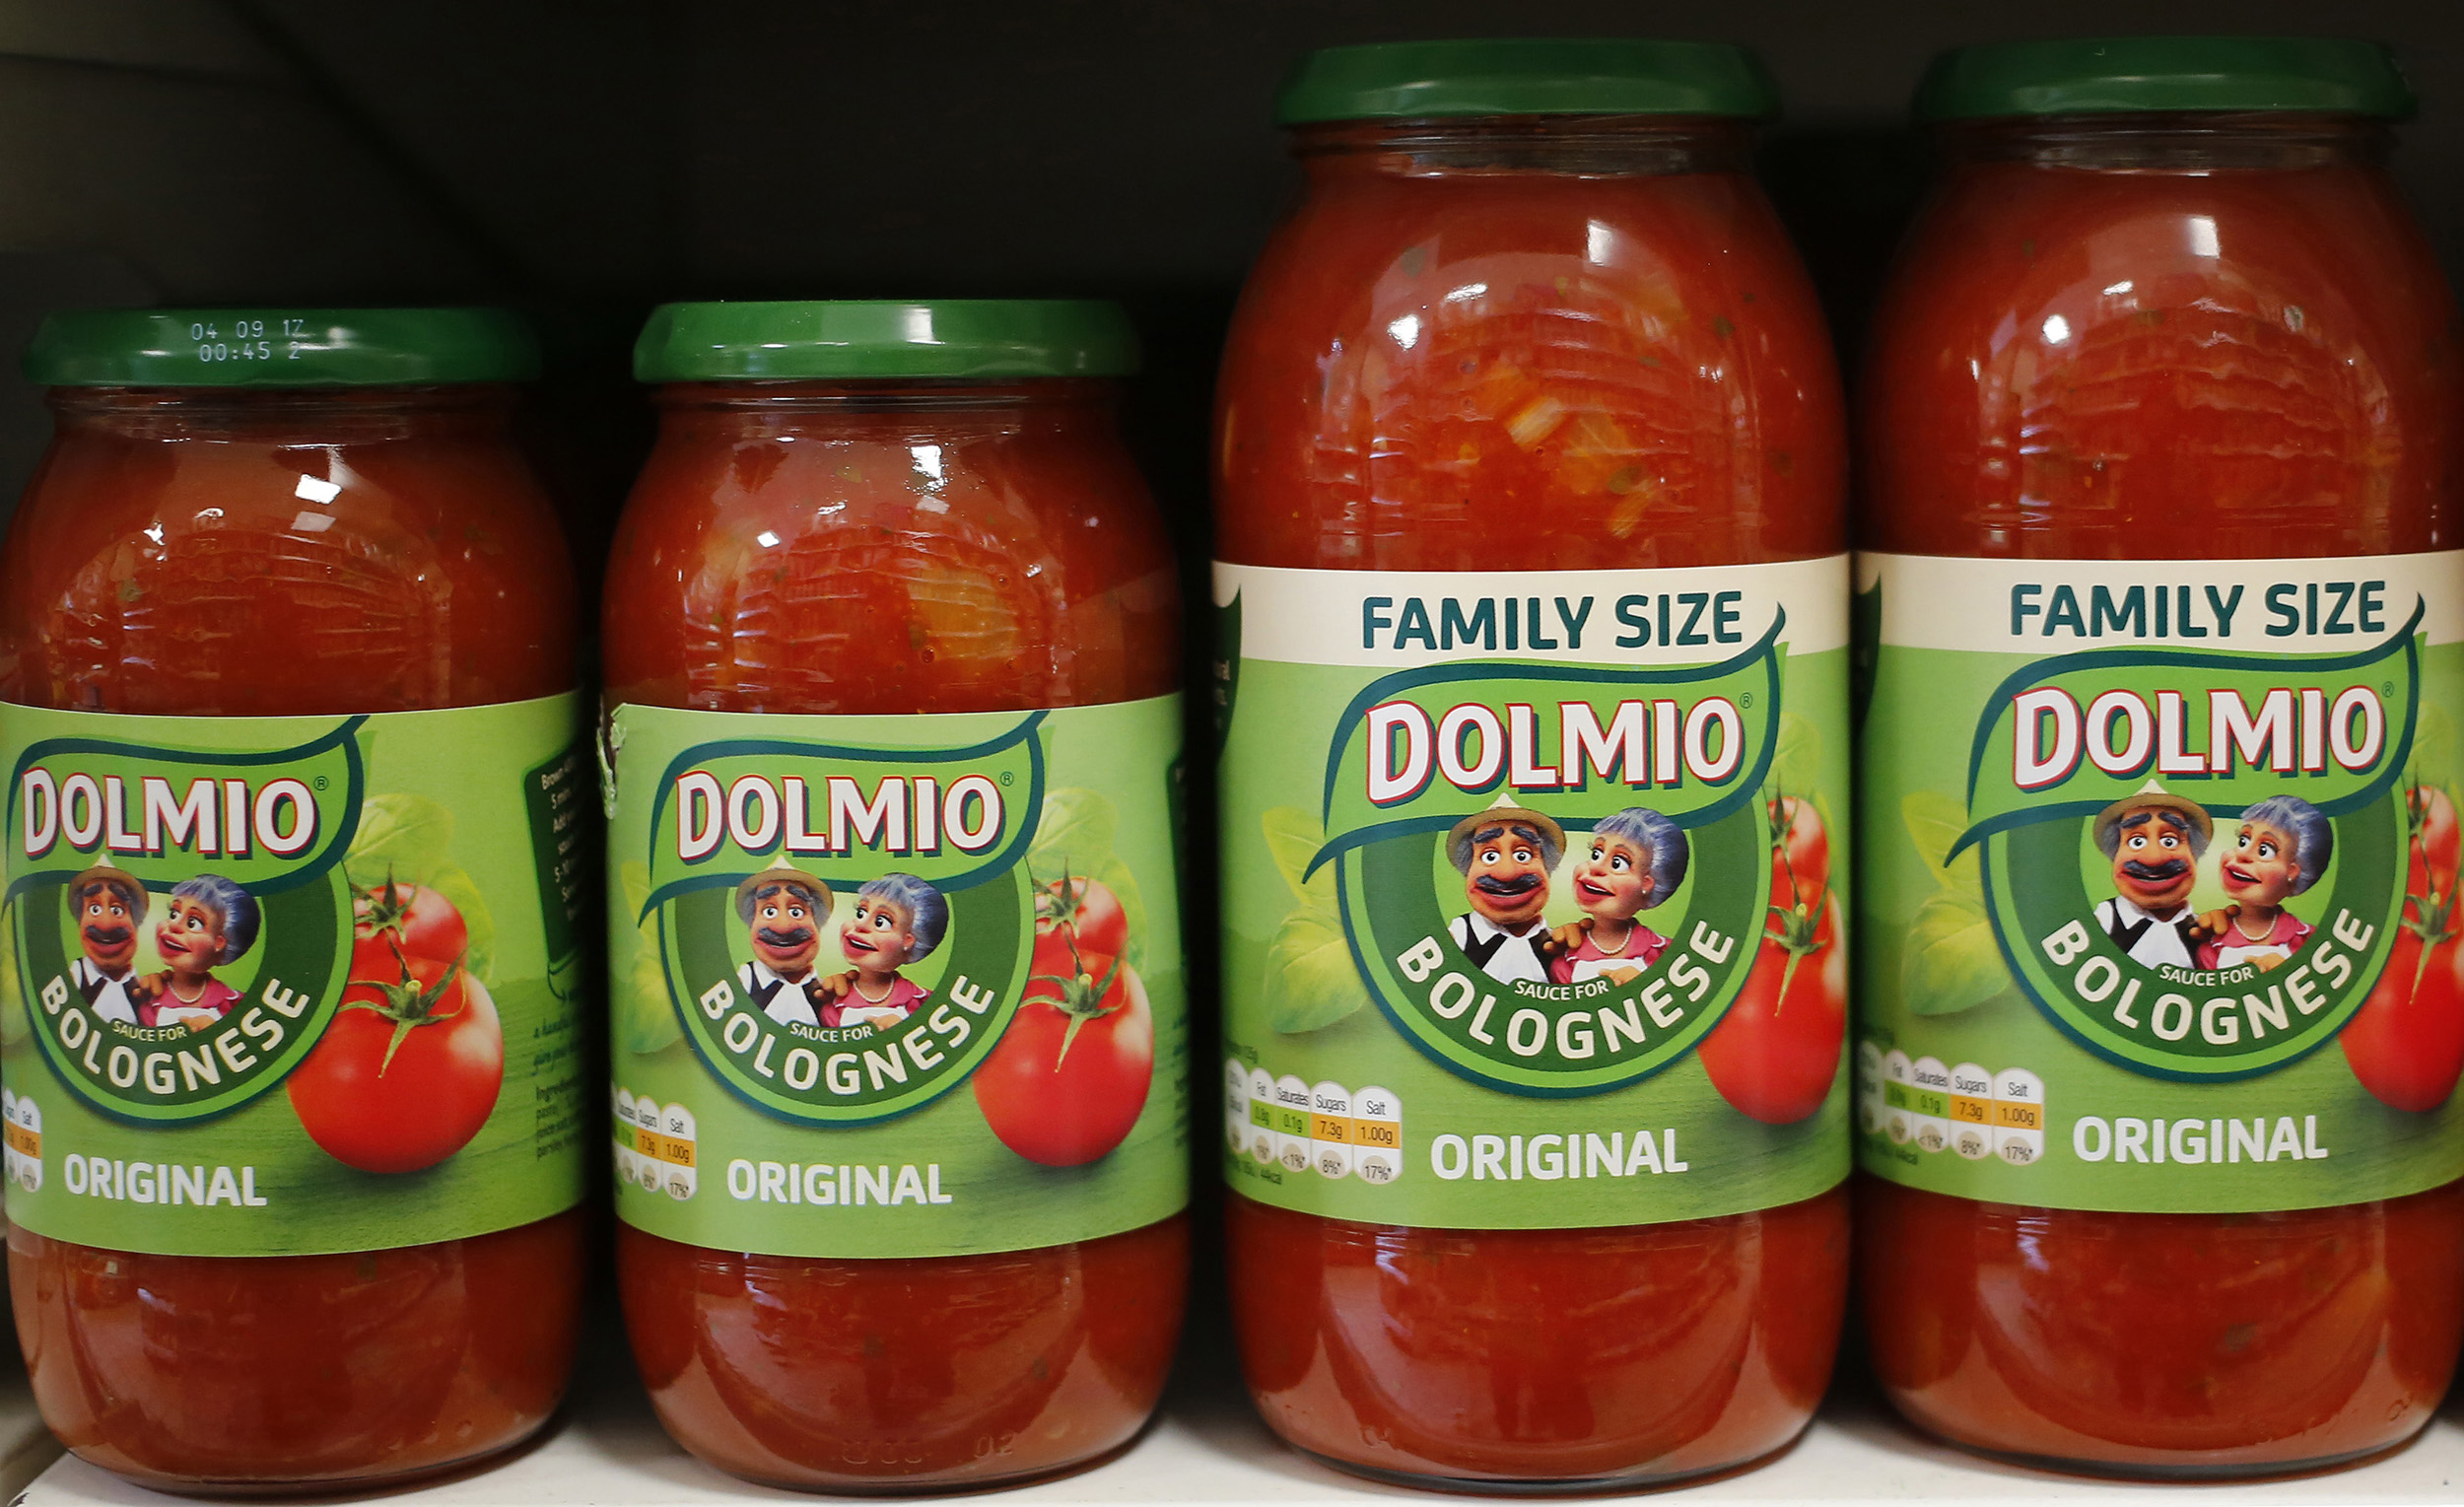 Dolmio pasta sauces are seen in a store in in London on April 15, 2016.